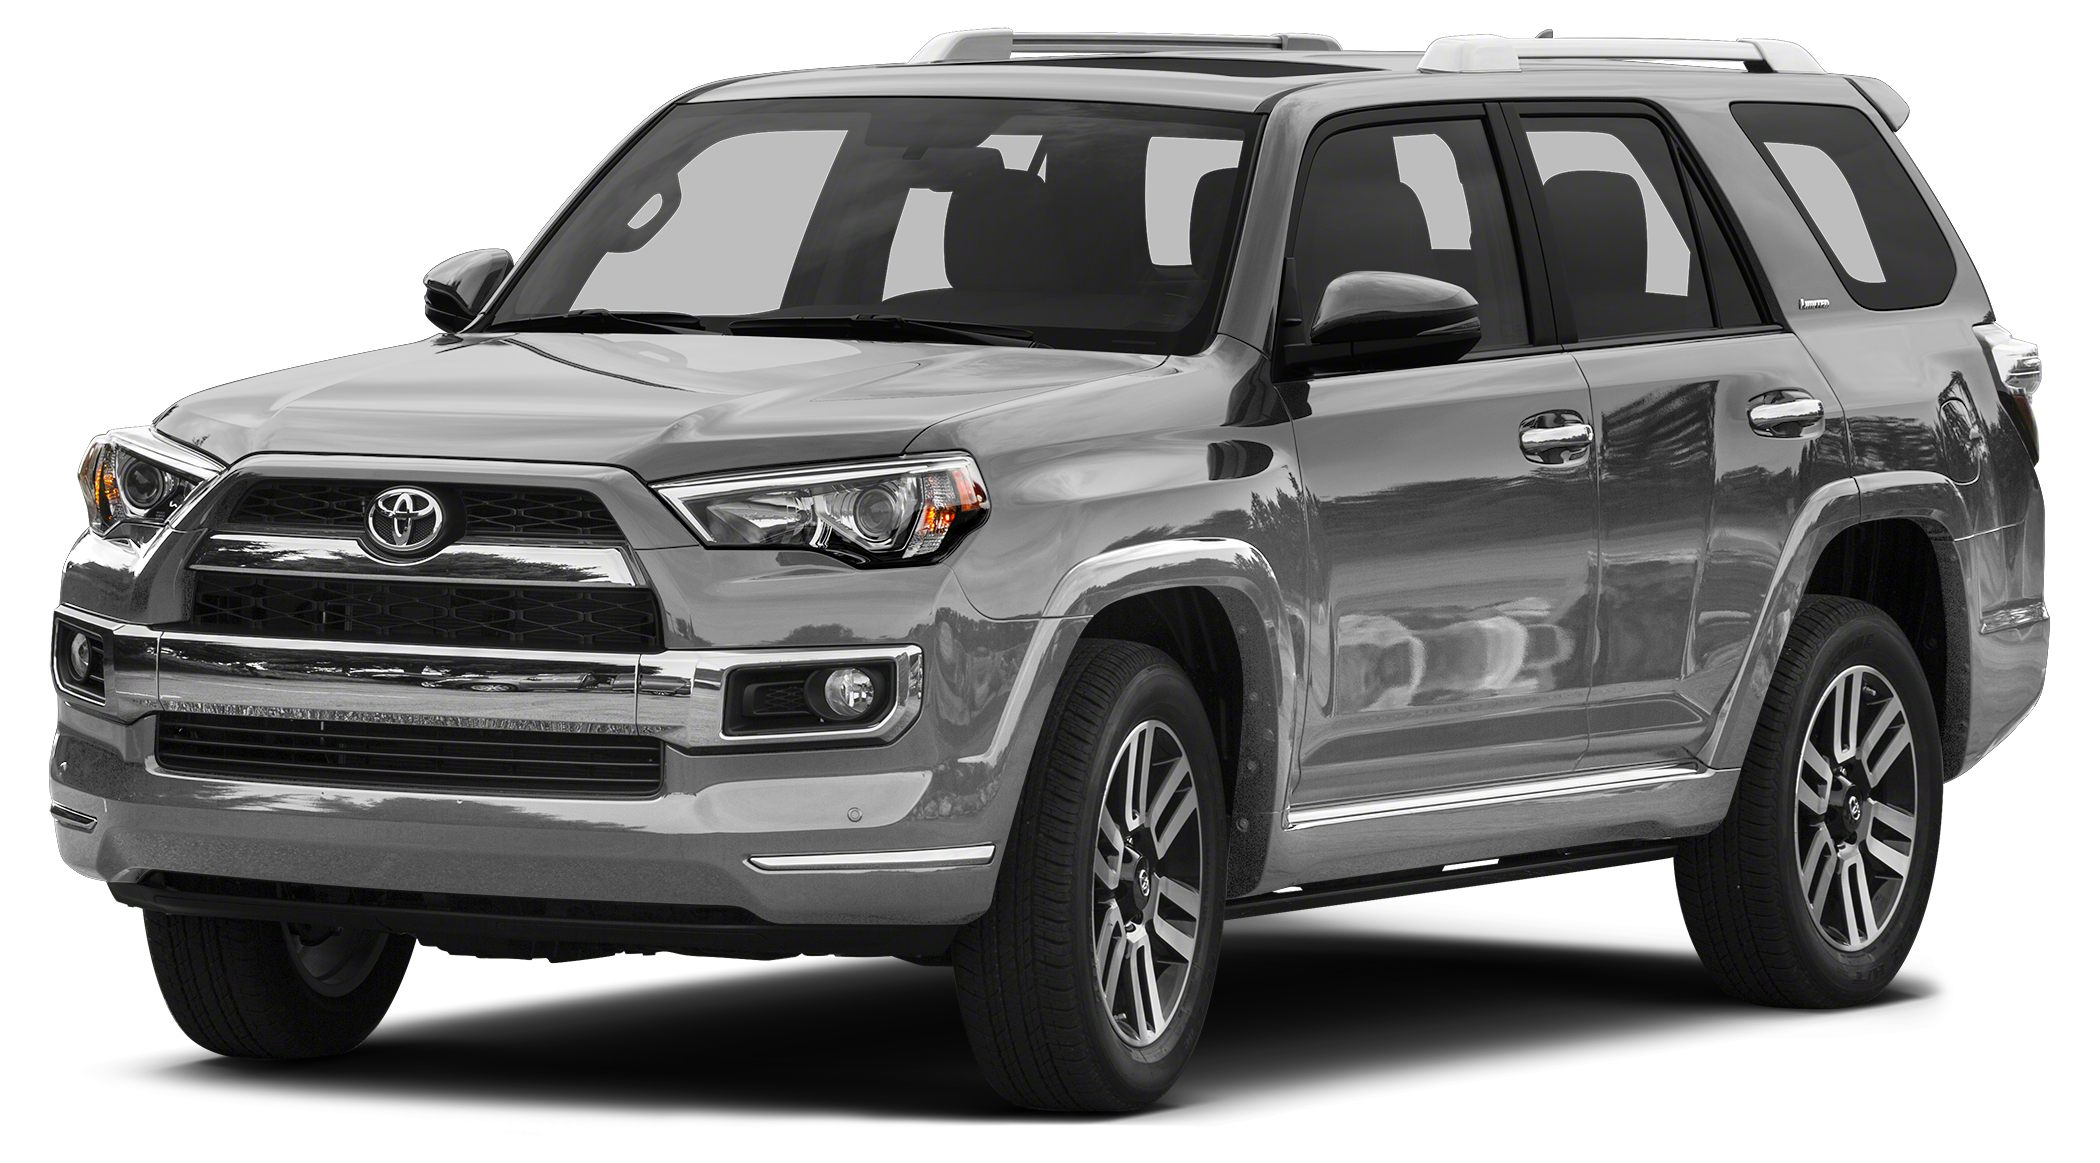 2015 Toyota 4Runner Limited CARFAX 1-Owner Limited trim CLASSIC SILVER METALLIC exterior and RED